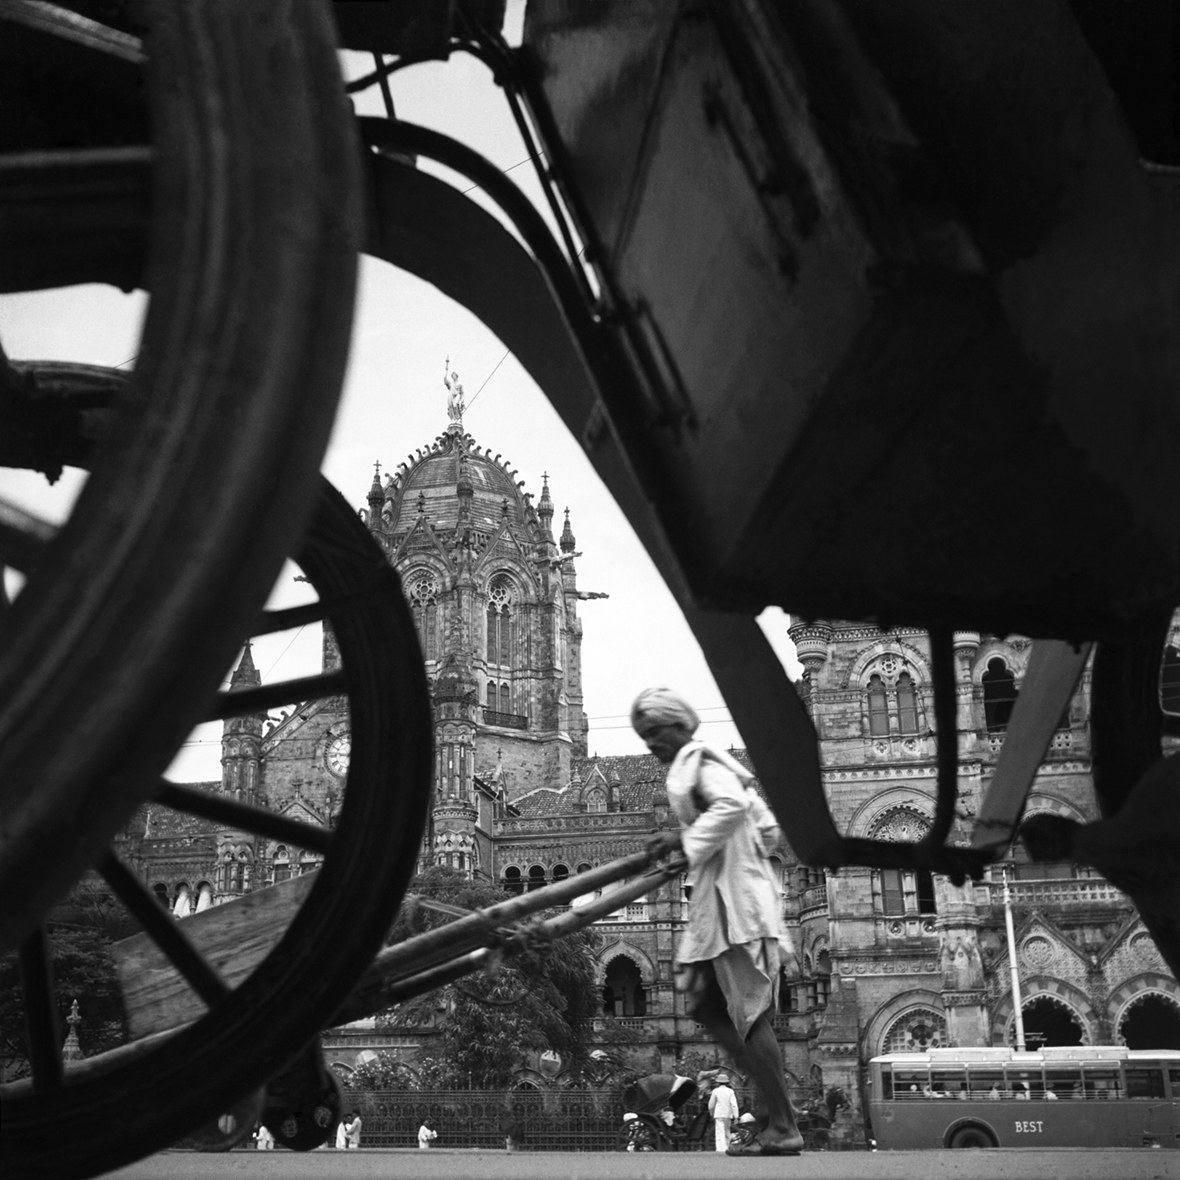 A man pushes a rickshaw in India, seen through the wheels of a cart with an ornate building in the background